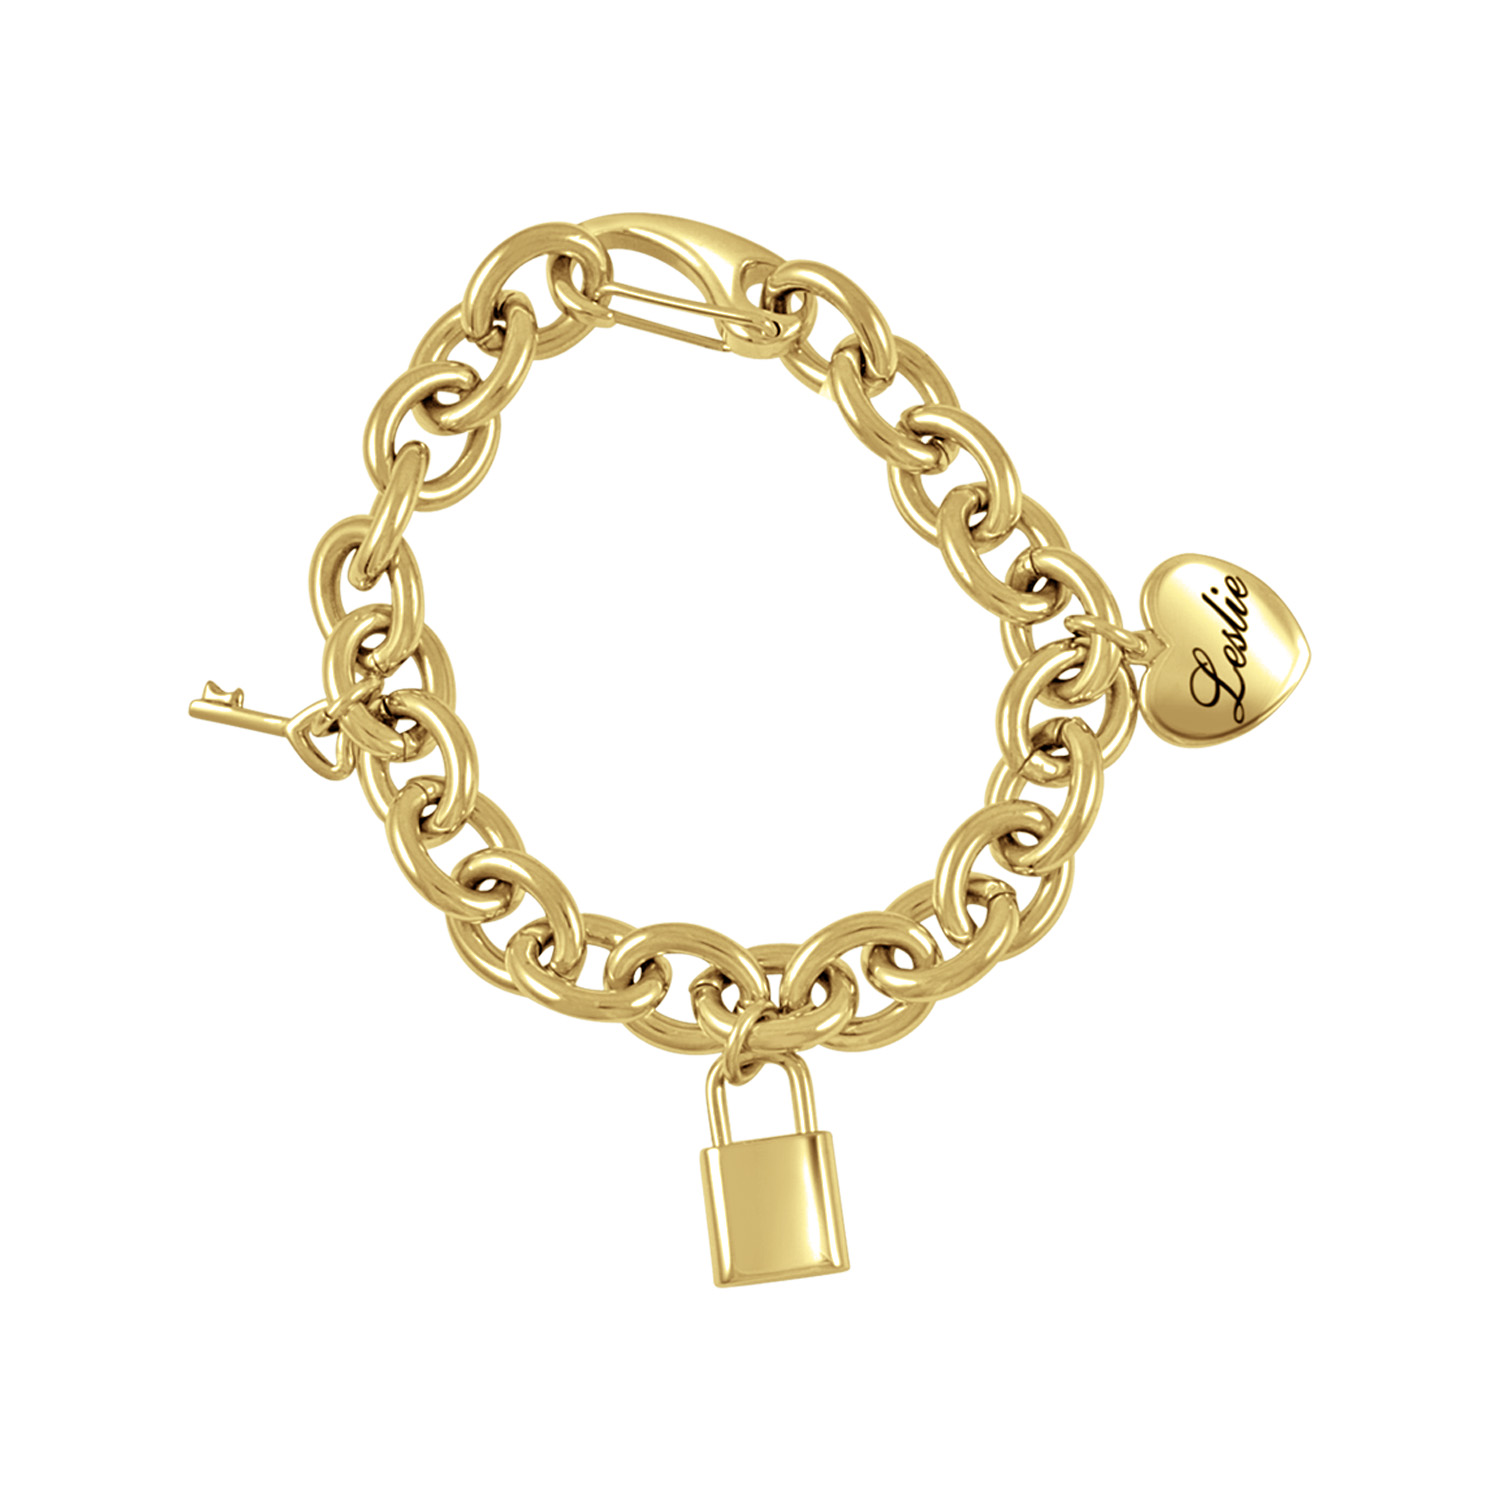 Heart, Lock, and Key Bracelet in Goldtone Stainless Steel